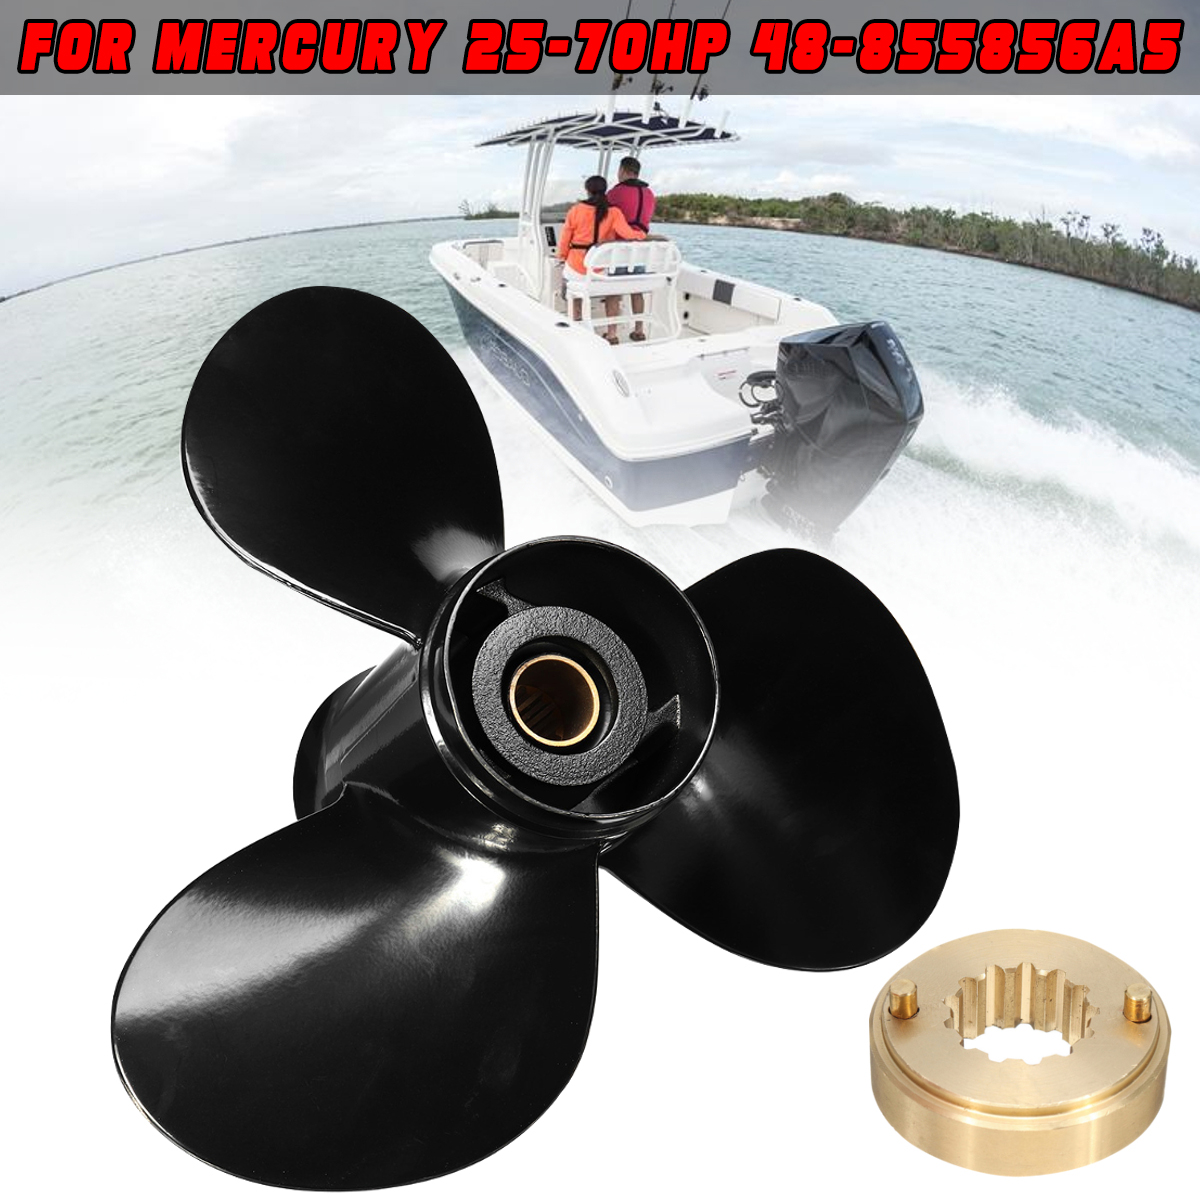 48 855856A5 11 3/8 x 12 Boat Outboard Propeller Aluminum Alloy Fit for Mercury 25 70HP 3 Blades 13 Spline Tooths R Rotation-in Marine Propeller from Automobiles & Motorcycles    1